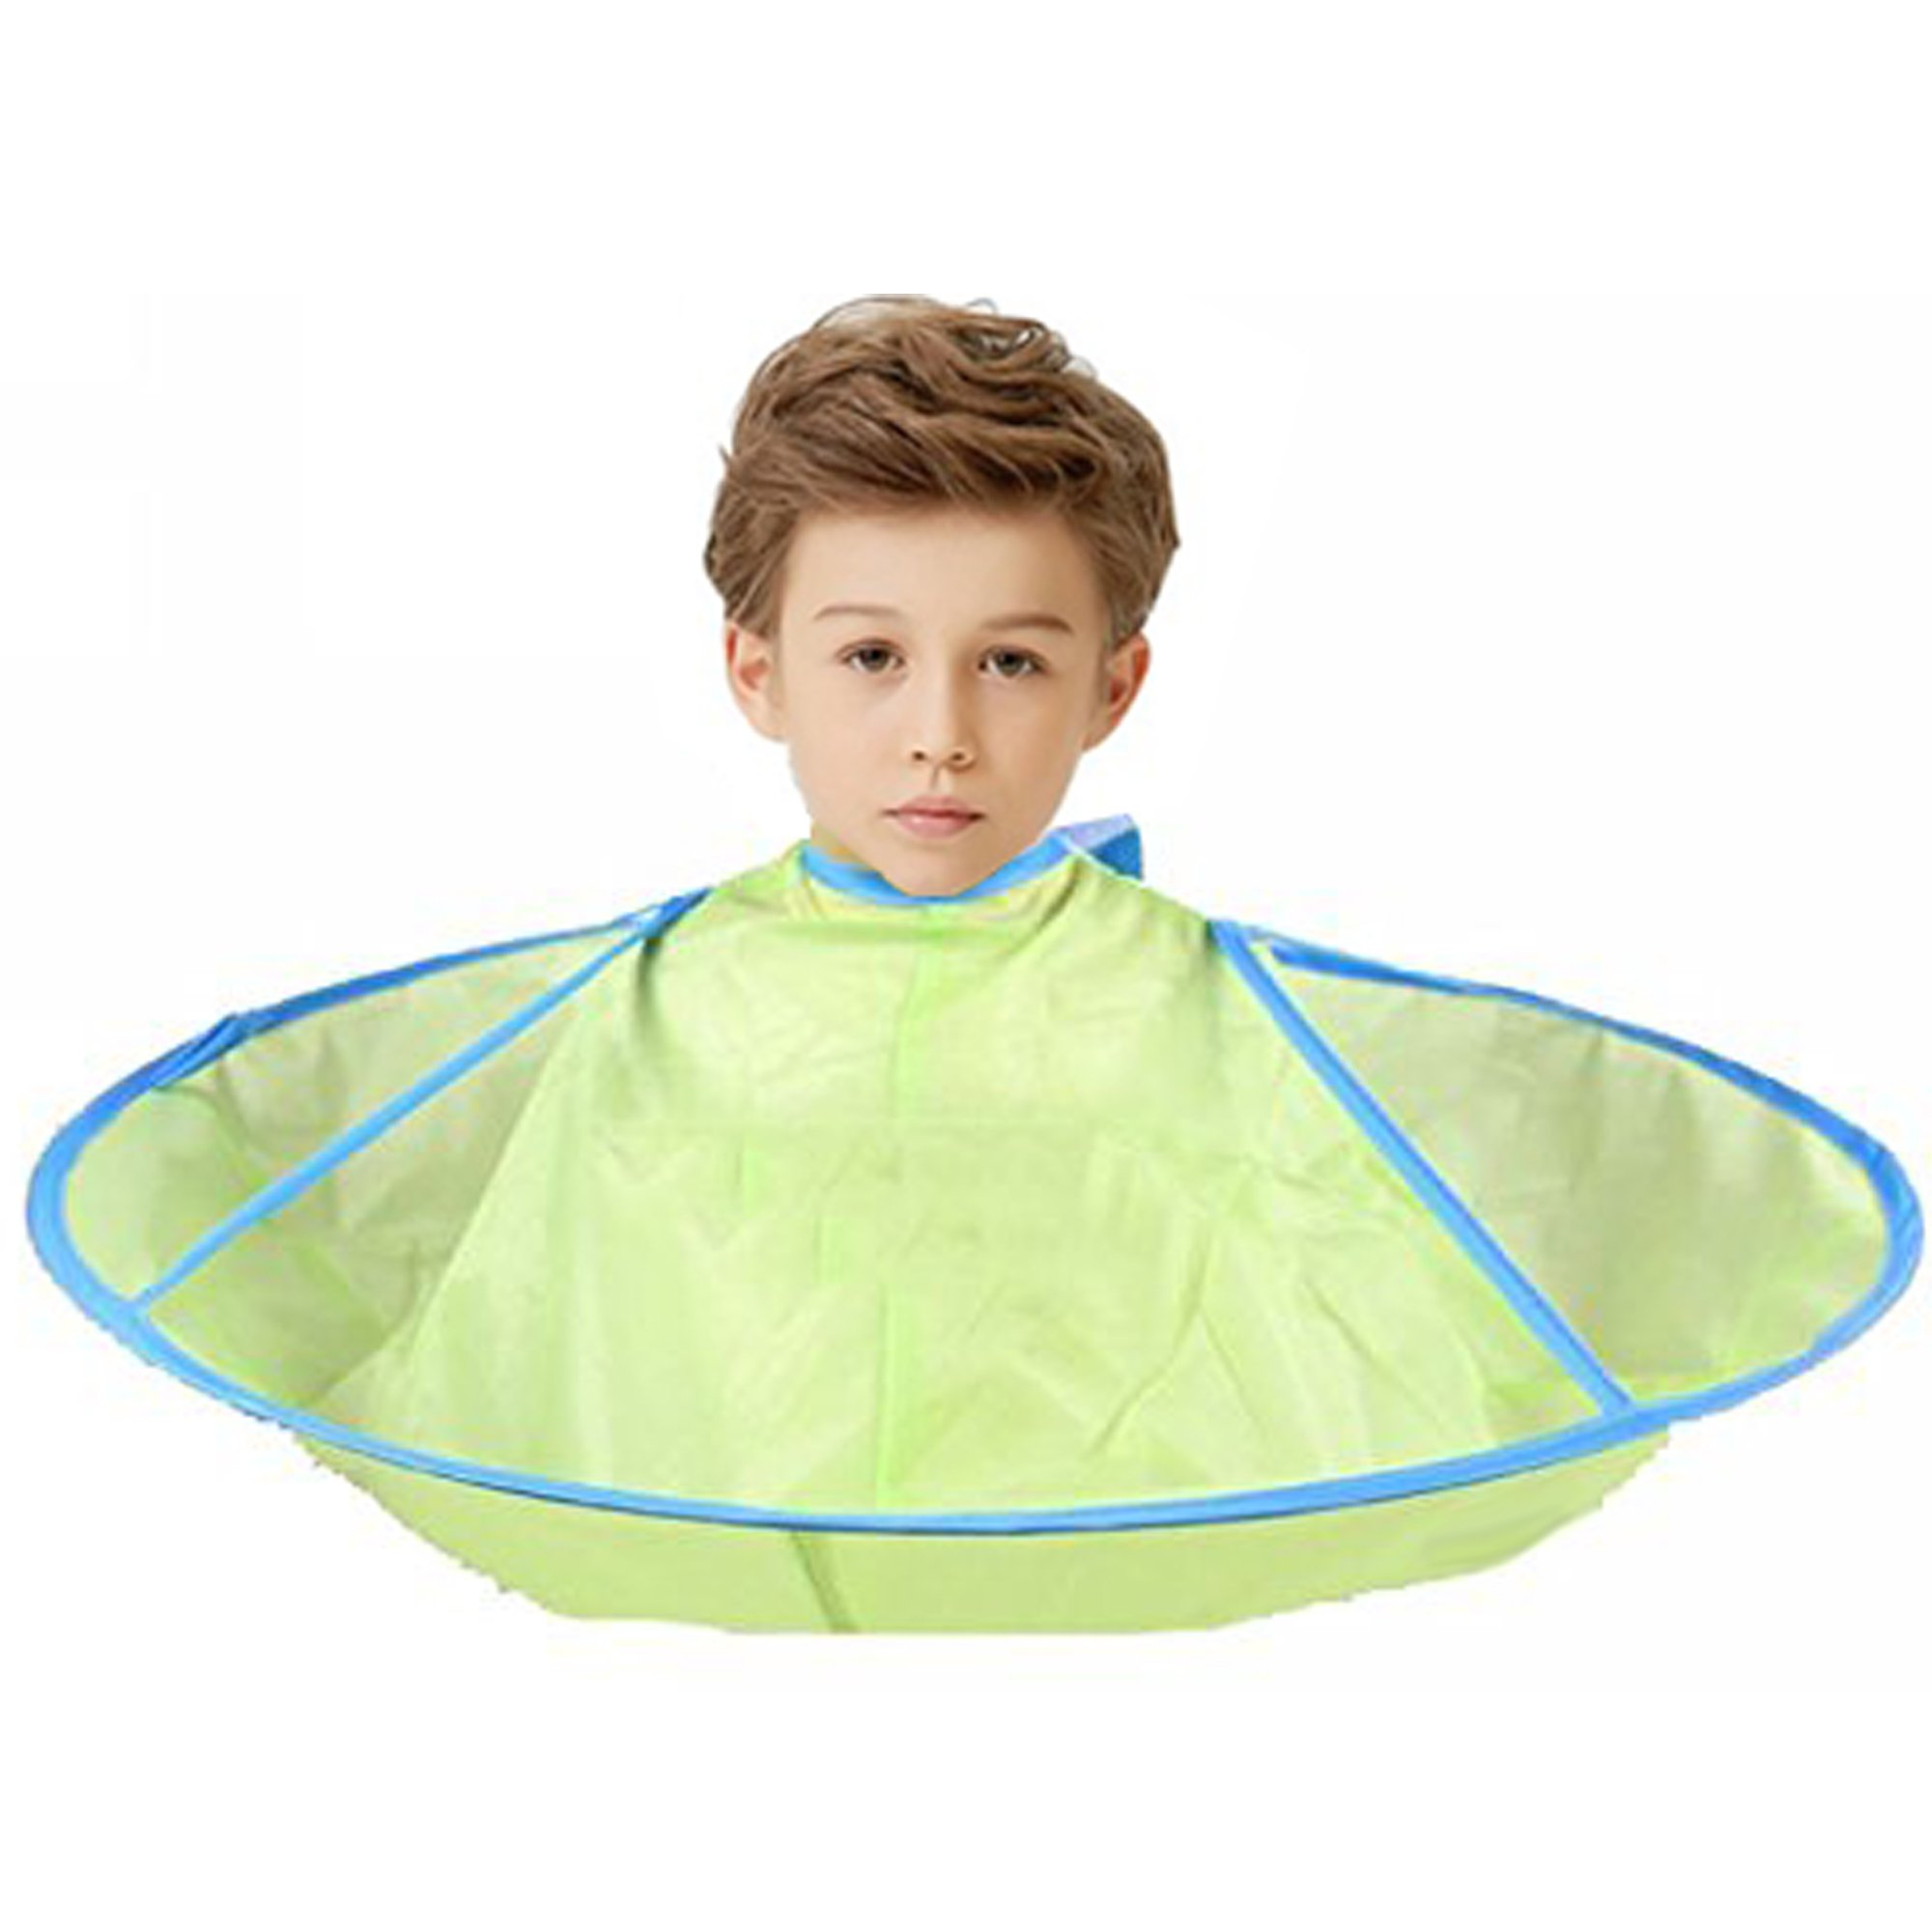 ATOP VALUE Hair Cutting Cloak Umbrella Cape Salon Waterproof Child Home Barber Hairdressing for Child Hairstylist Design Gown Barbers